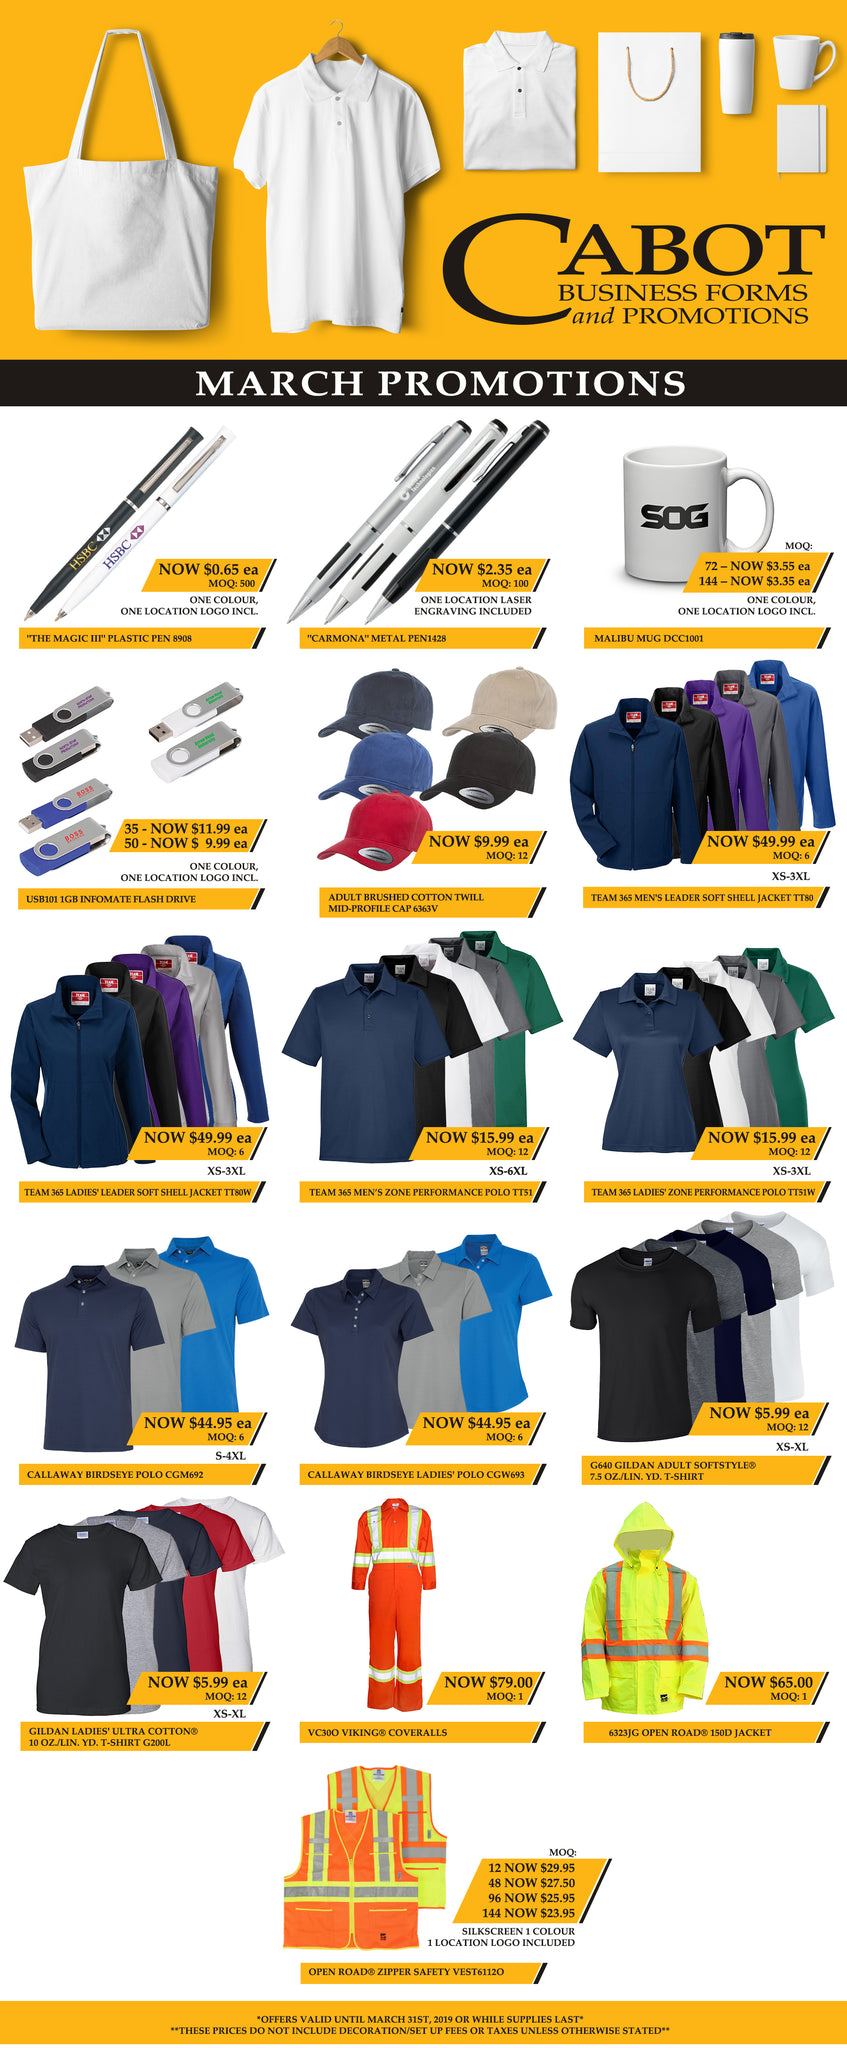 Cabot Business Forms and Promotions March Specials